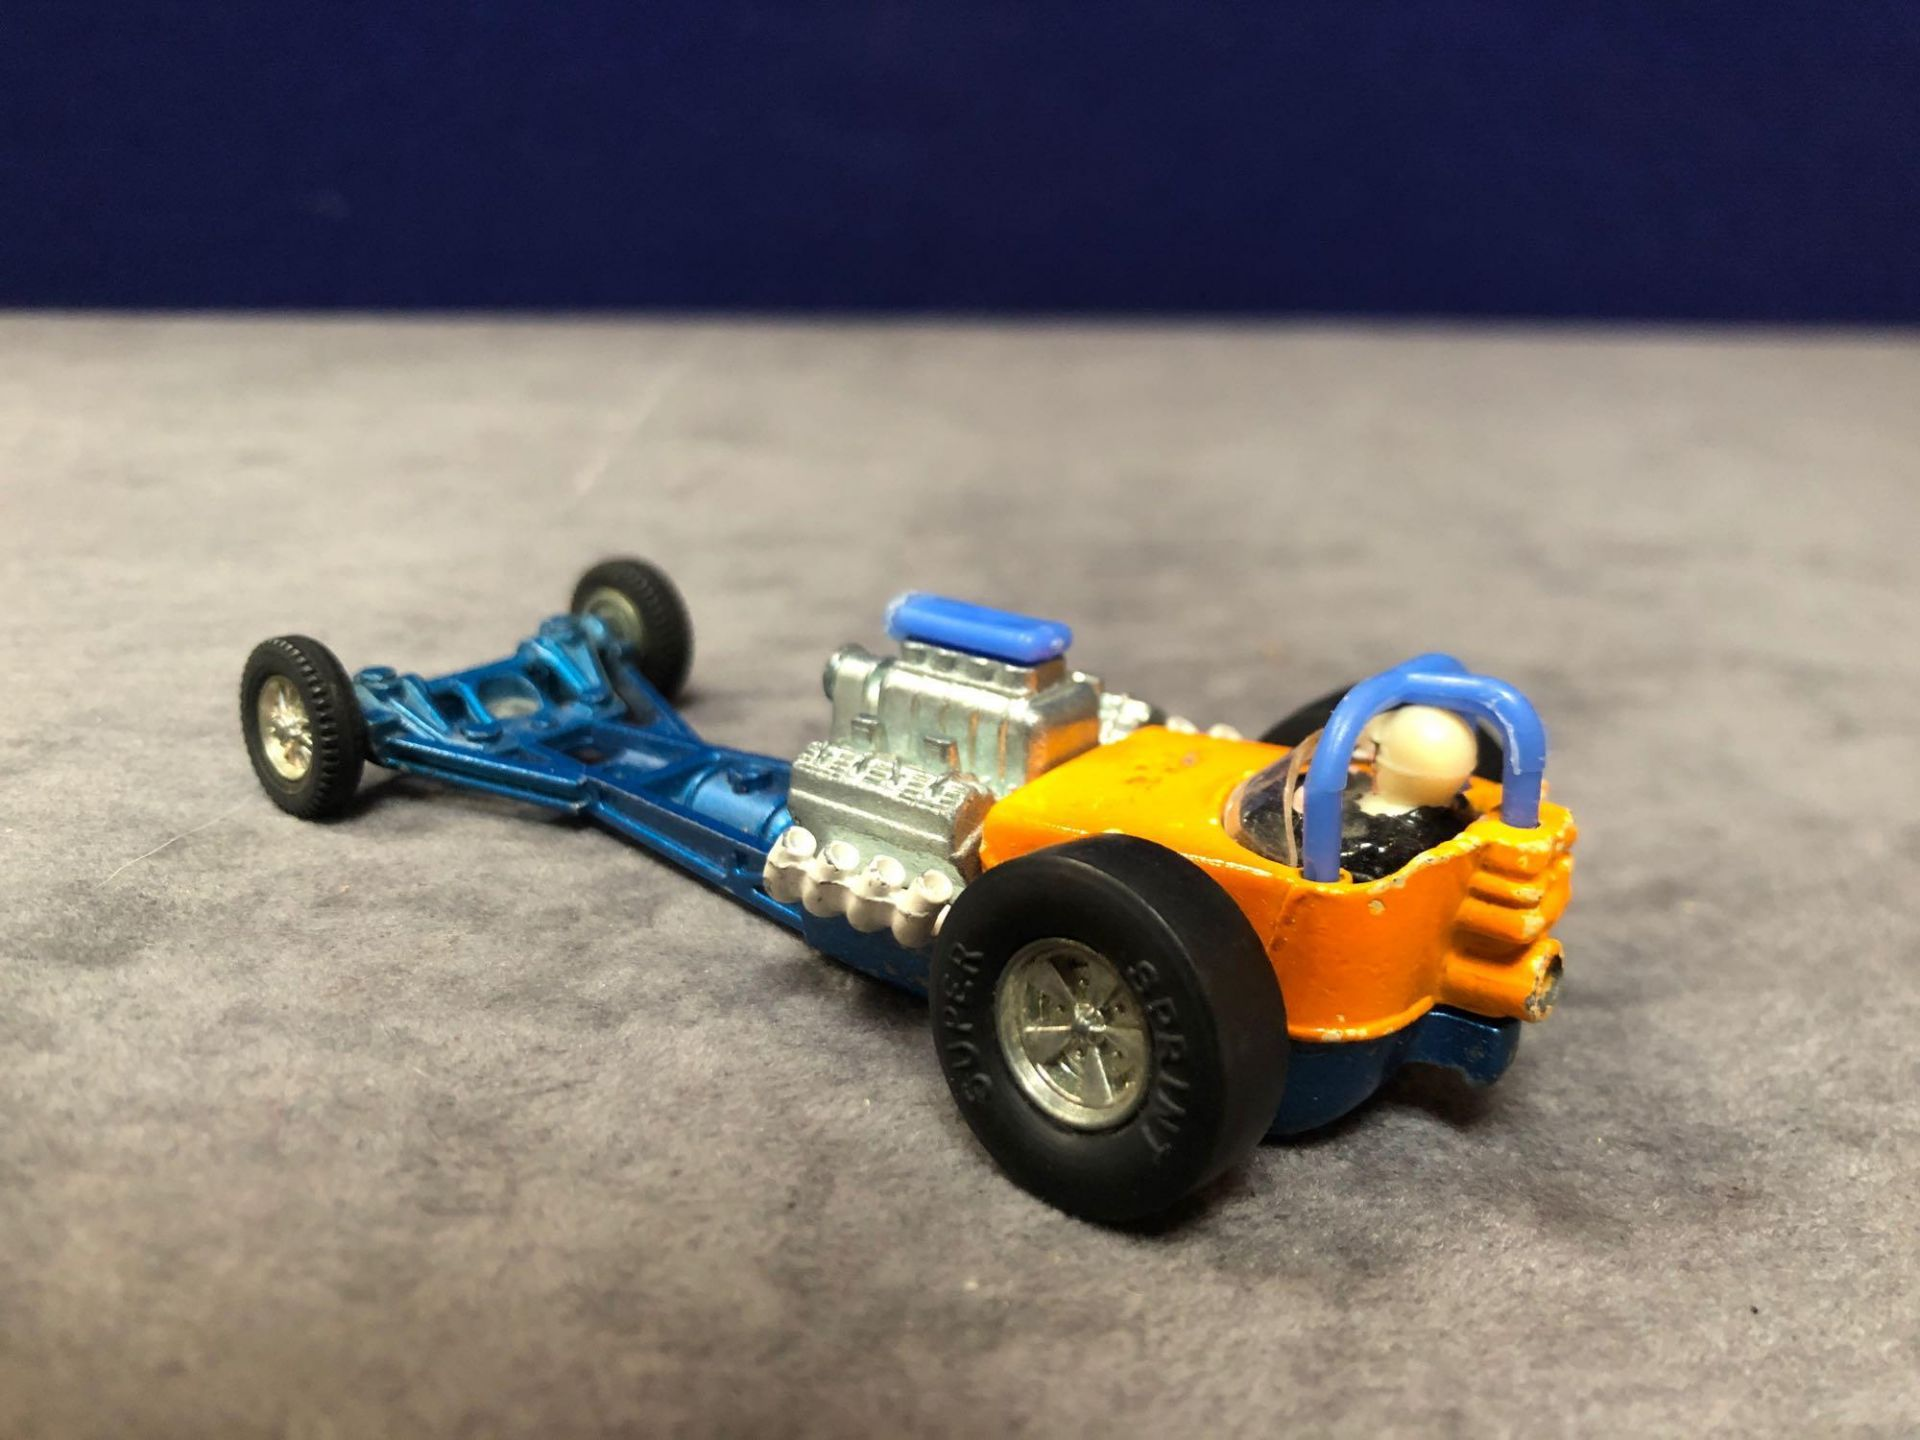 Dinky #228 Super Sprinter Blue And Orange - Exposed Engine And Speed Wheels. Very god model in a - Image 3 of 4